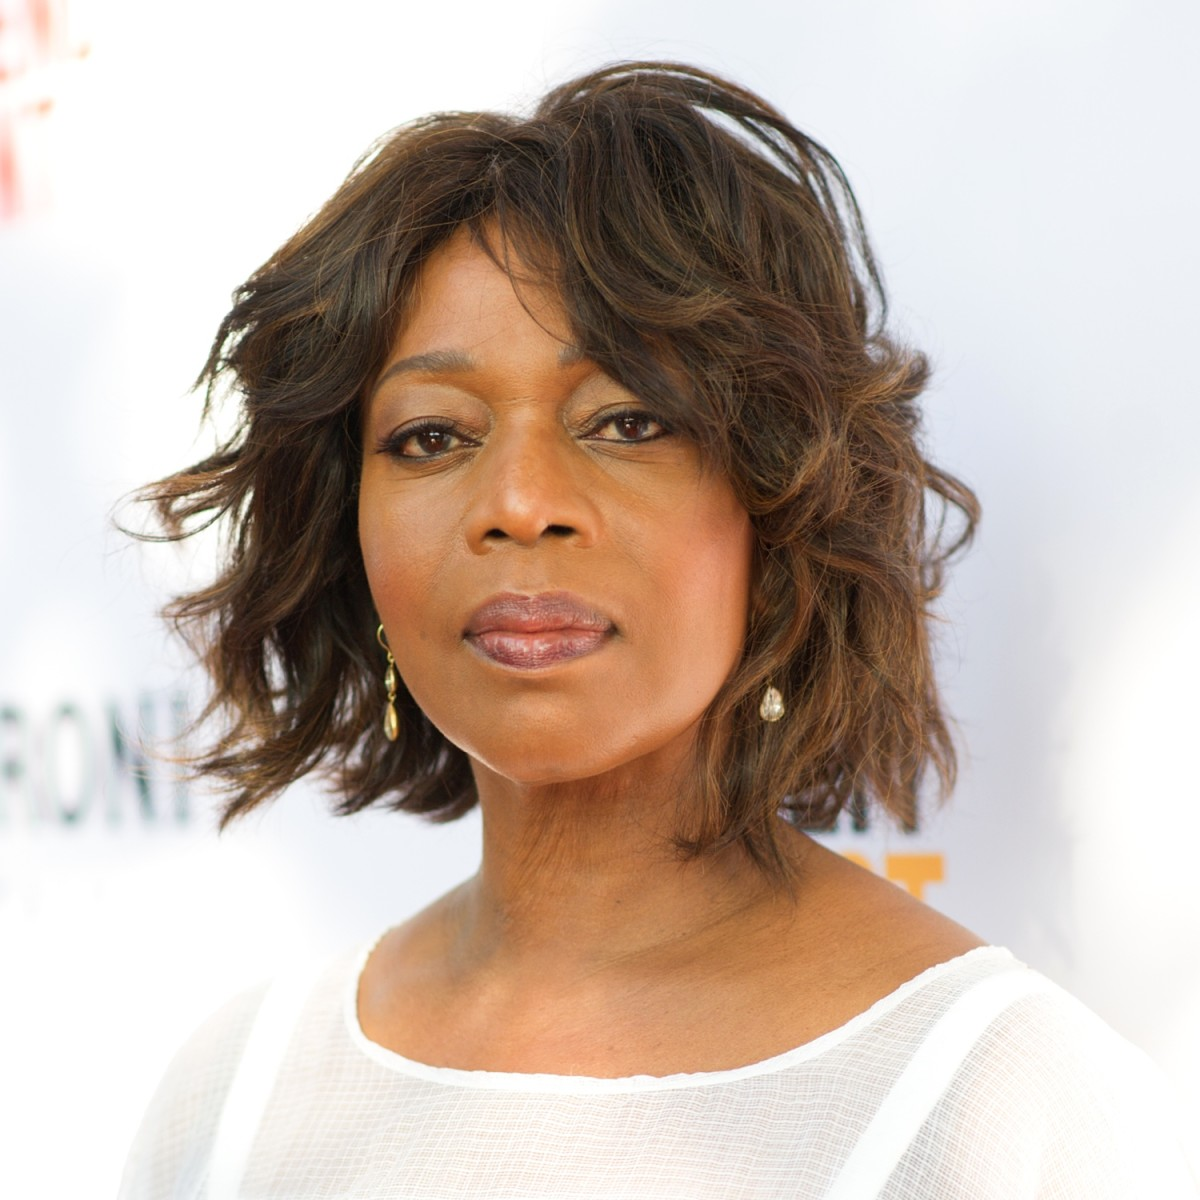 Alfre Woodard nude (54 foto and video), Topless, Bikini, Instagram, swimsuit 2006